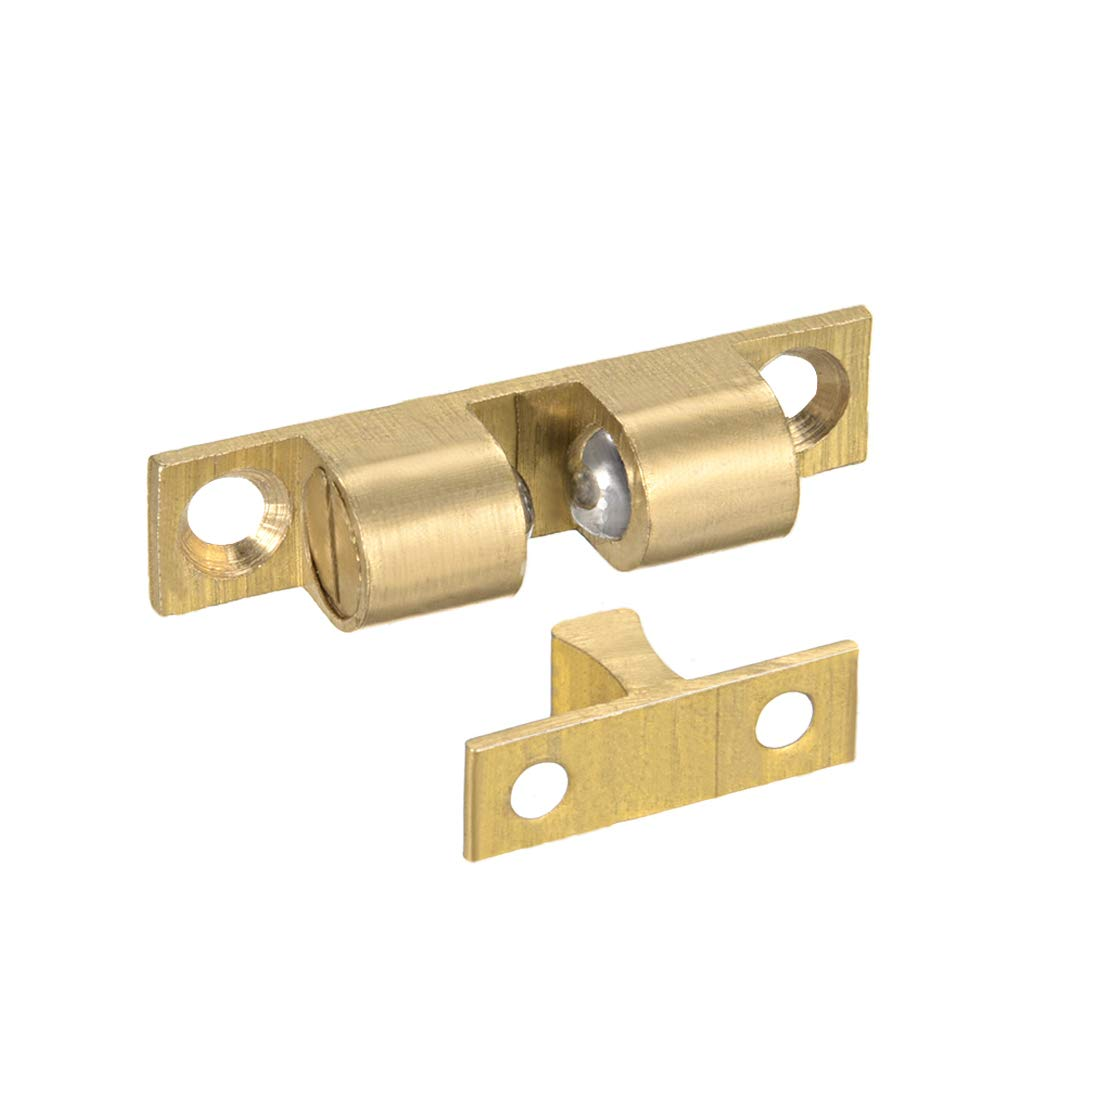 uxcell 50mm Furniture Cabinet Door Brass Dual Ball Roller Catch Latch 10 Pcs a14111100ux0093